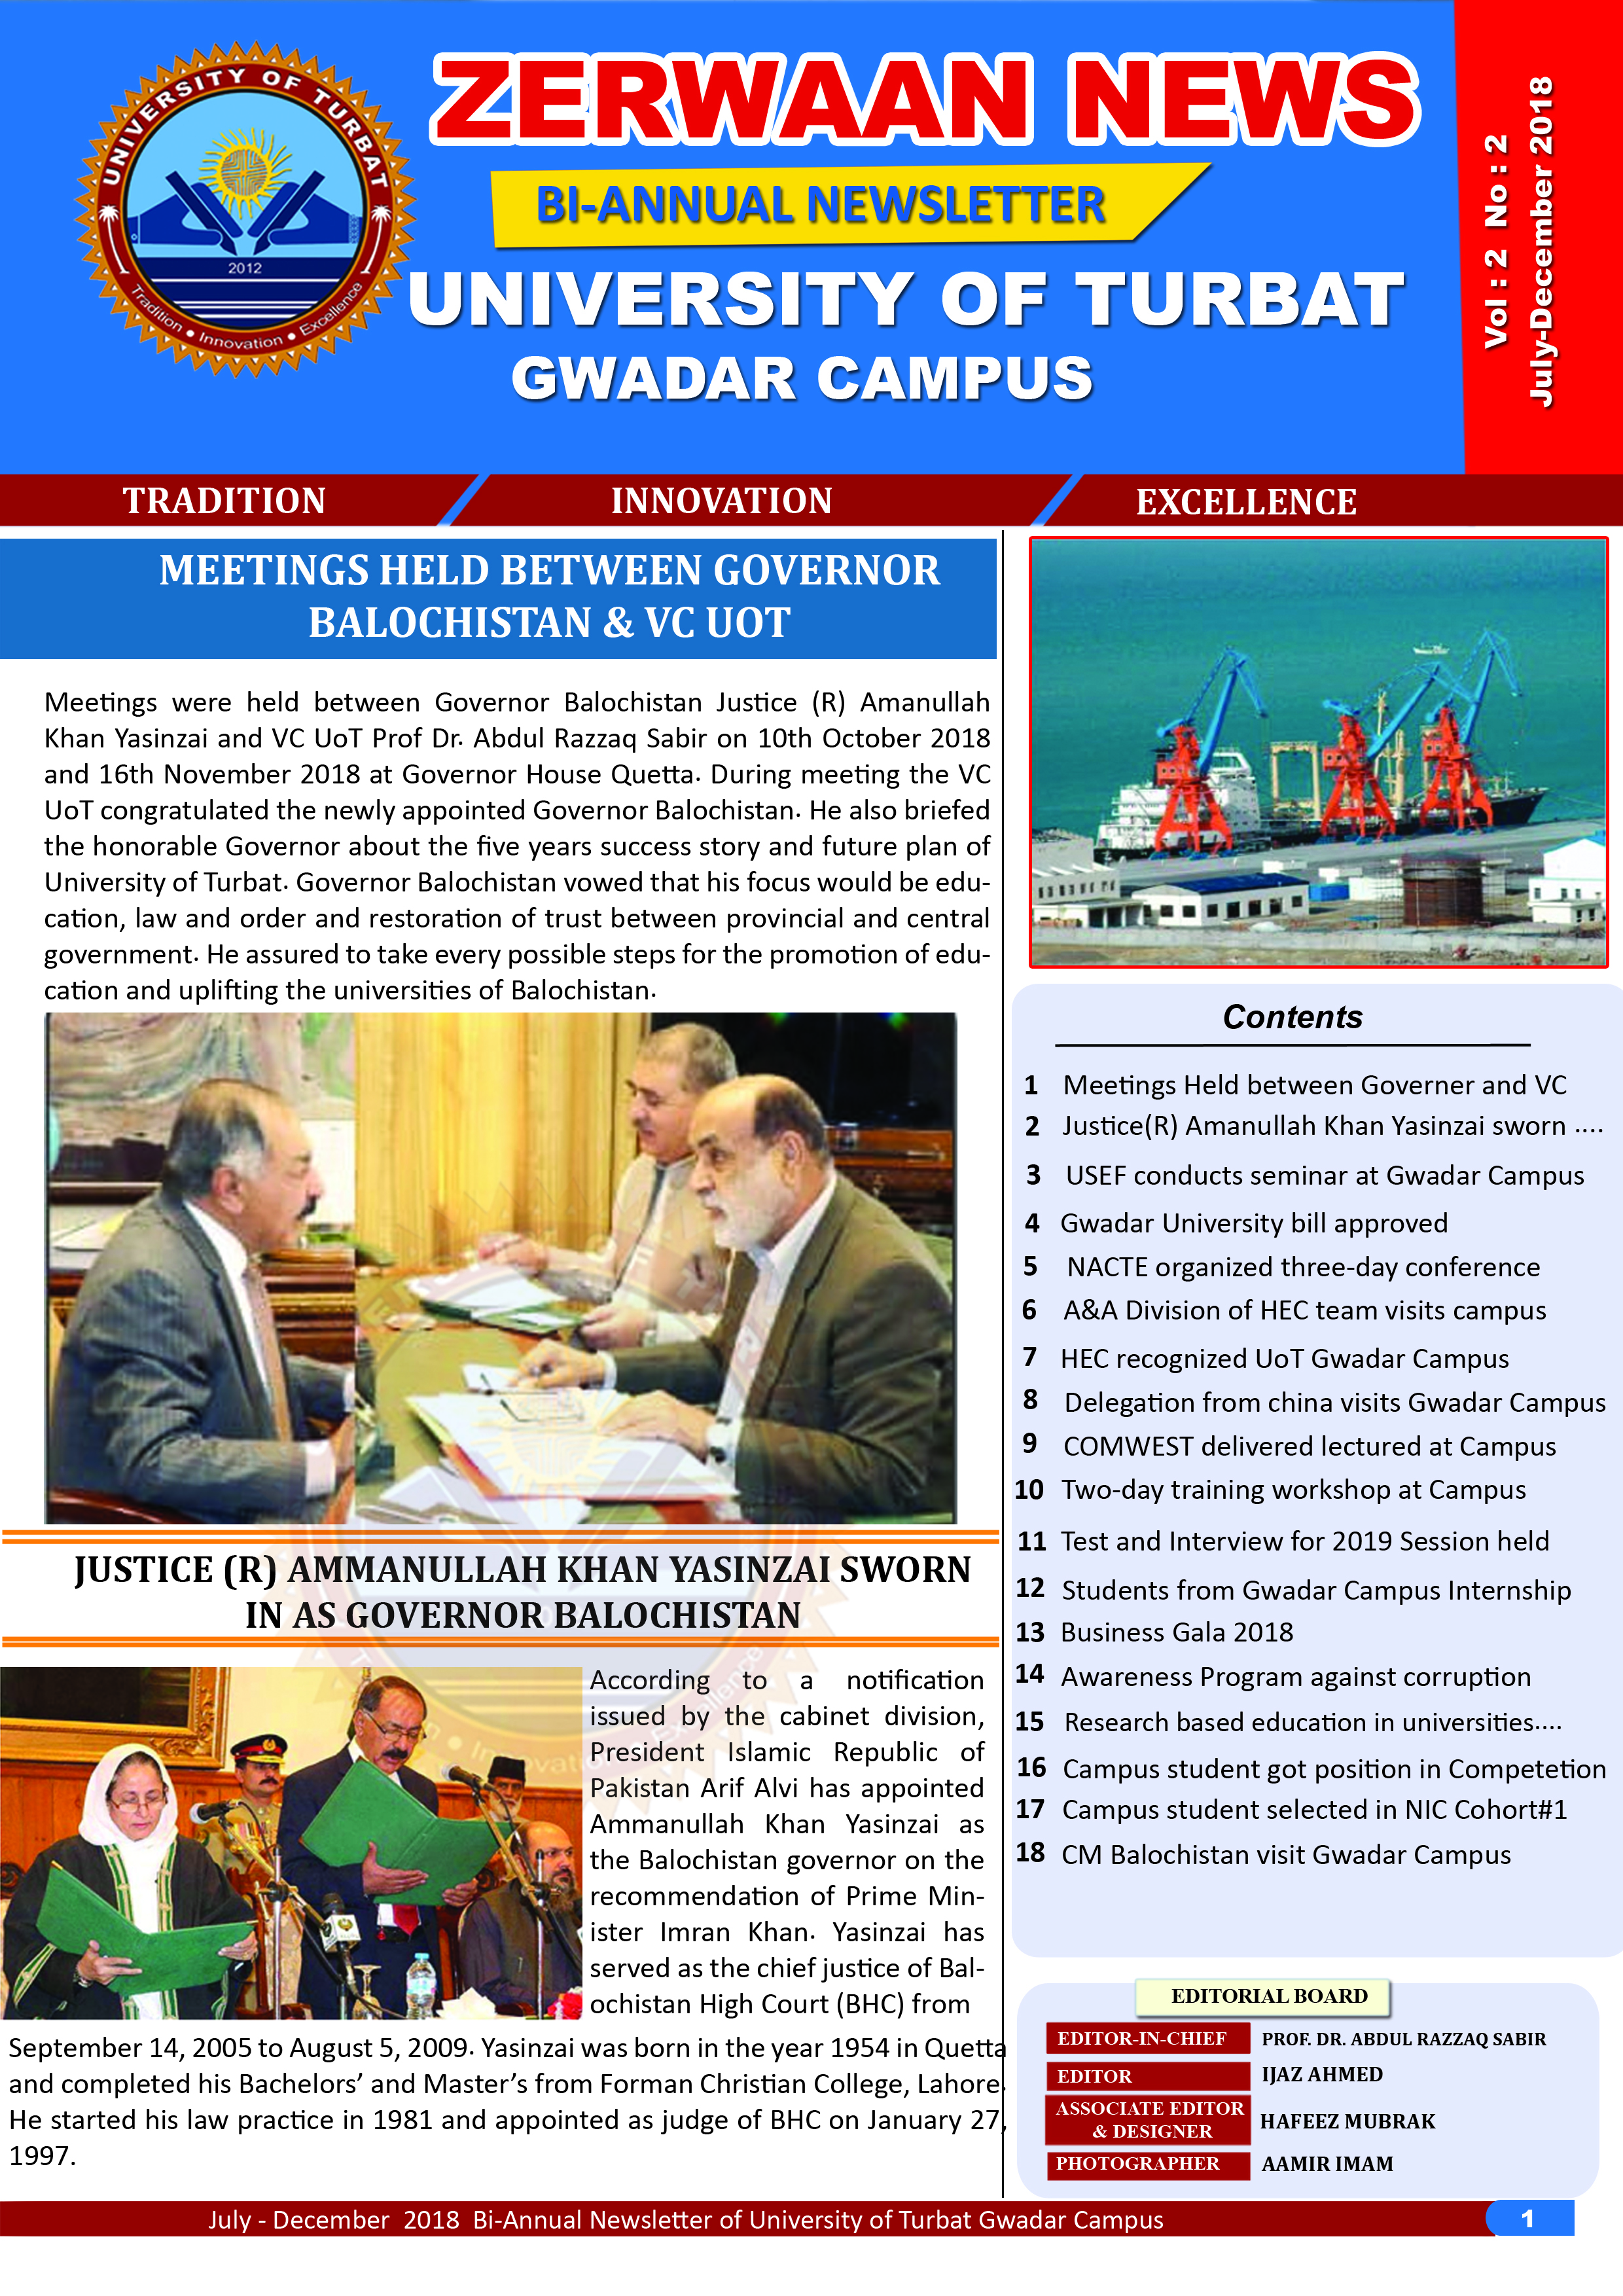 Zerwaan News July-December 2018 Edition